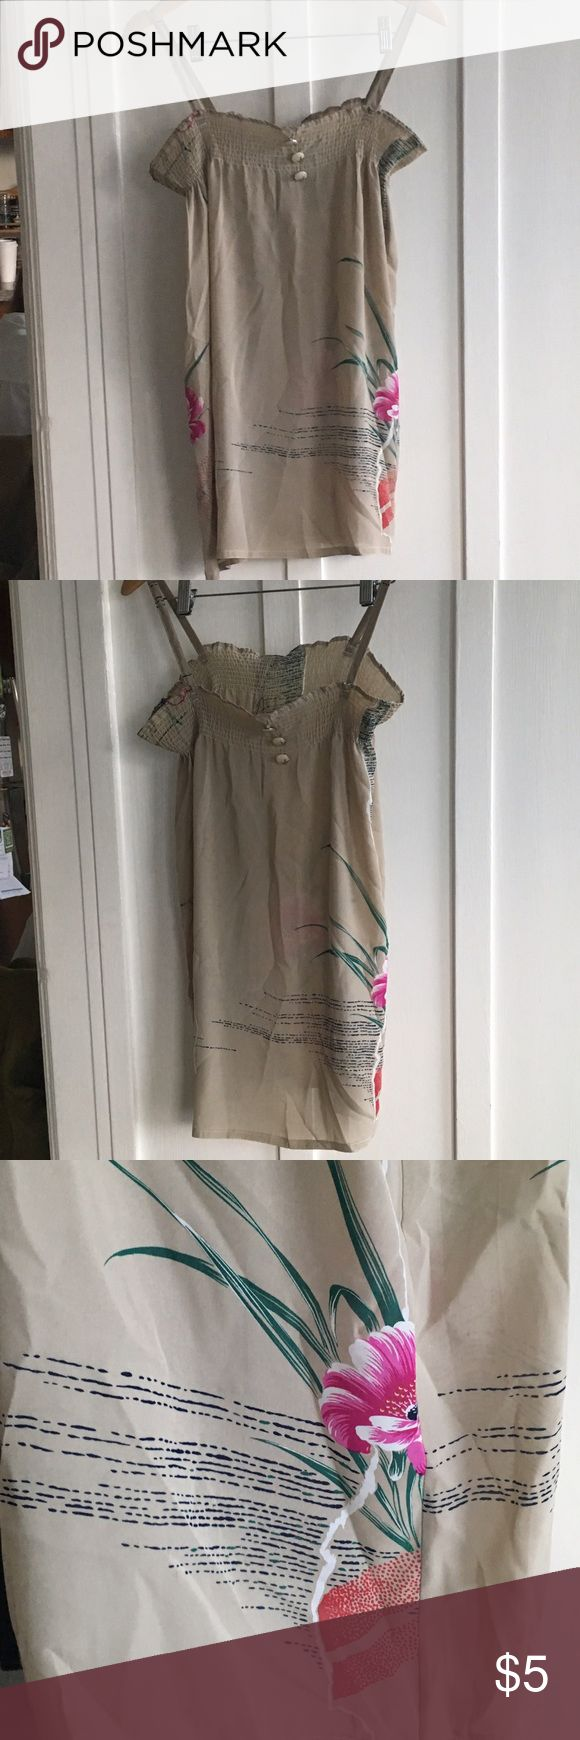 LAST CHANCE flowy floral beige cami LAST CHANCE (will remove listing in 5 days) this flowy beige cami features beautiful floral print and decorative buttons. not sure of material (bought in thailand), probably rayon. not stretchy, in good condition. Tops Camisoles